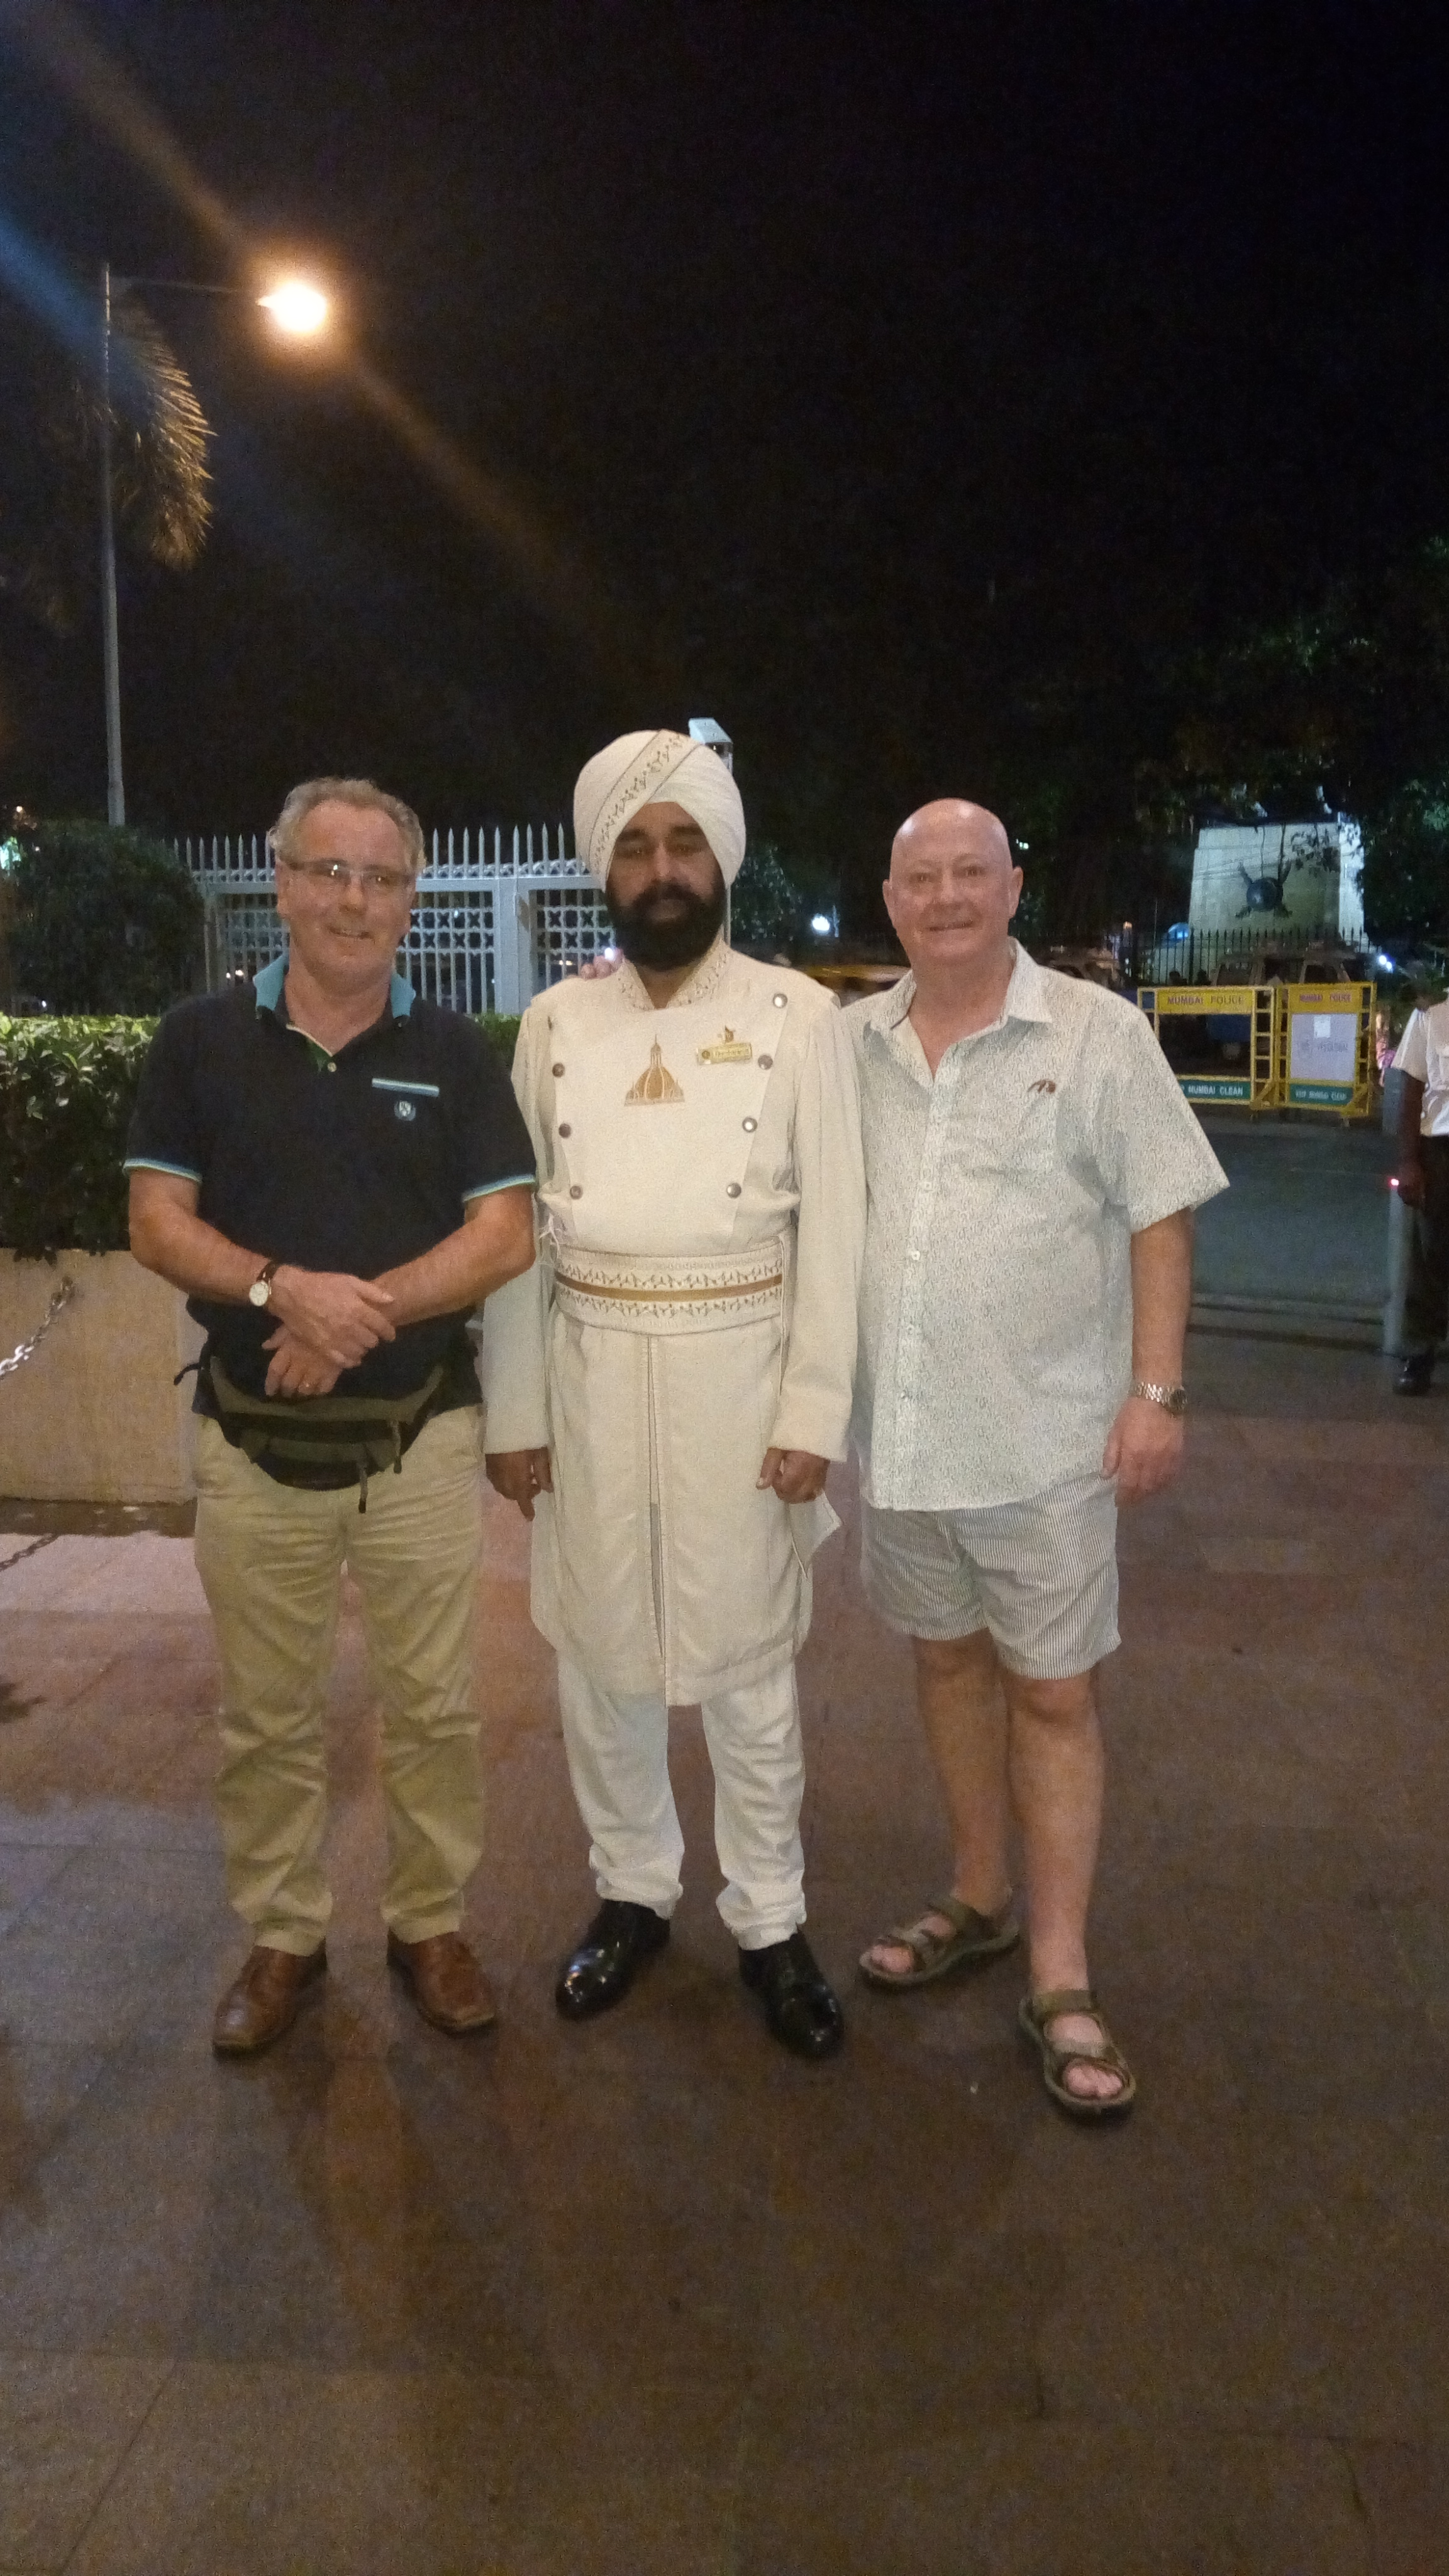 Outside The Taj Mahal Hotel in Mumbai – our search for soluble paper begins in India.